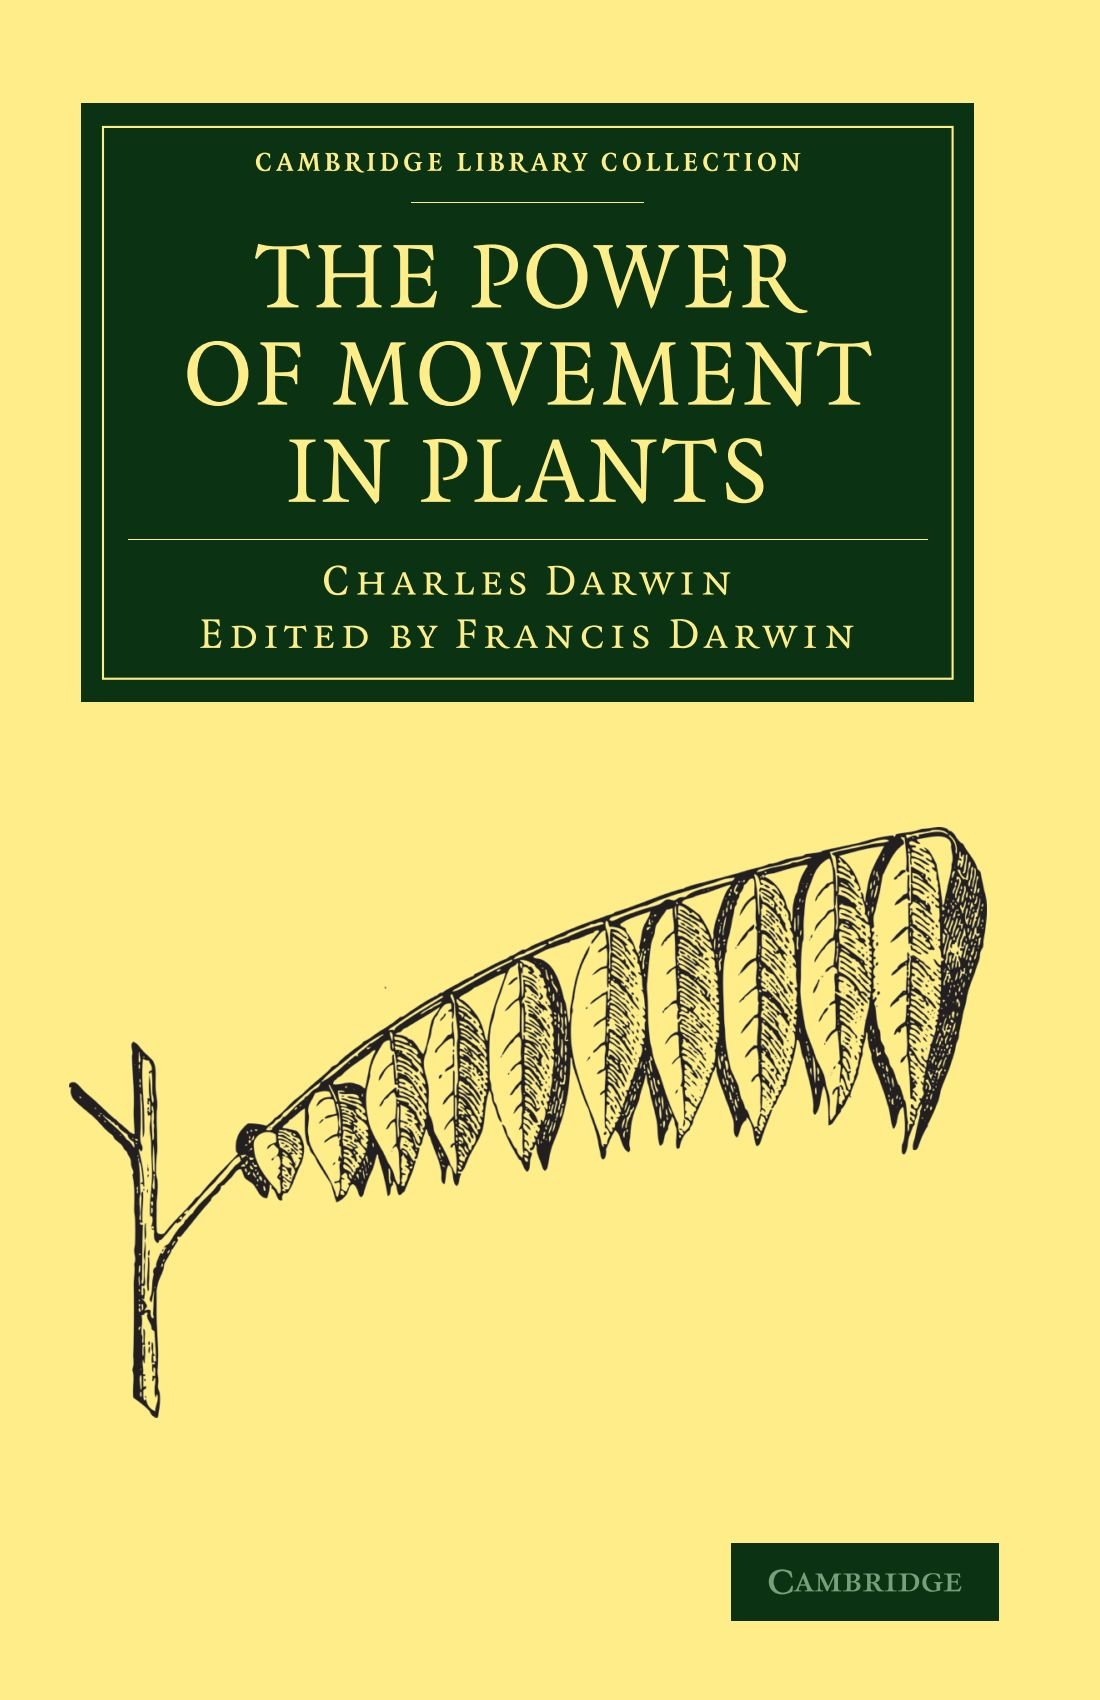 Download The Power of Movement in Plants (Cambridge Library Collection - Darwin, Evolution and Genetics) pdf